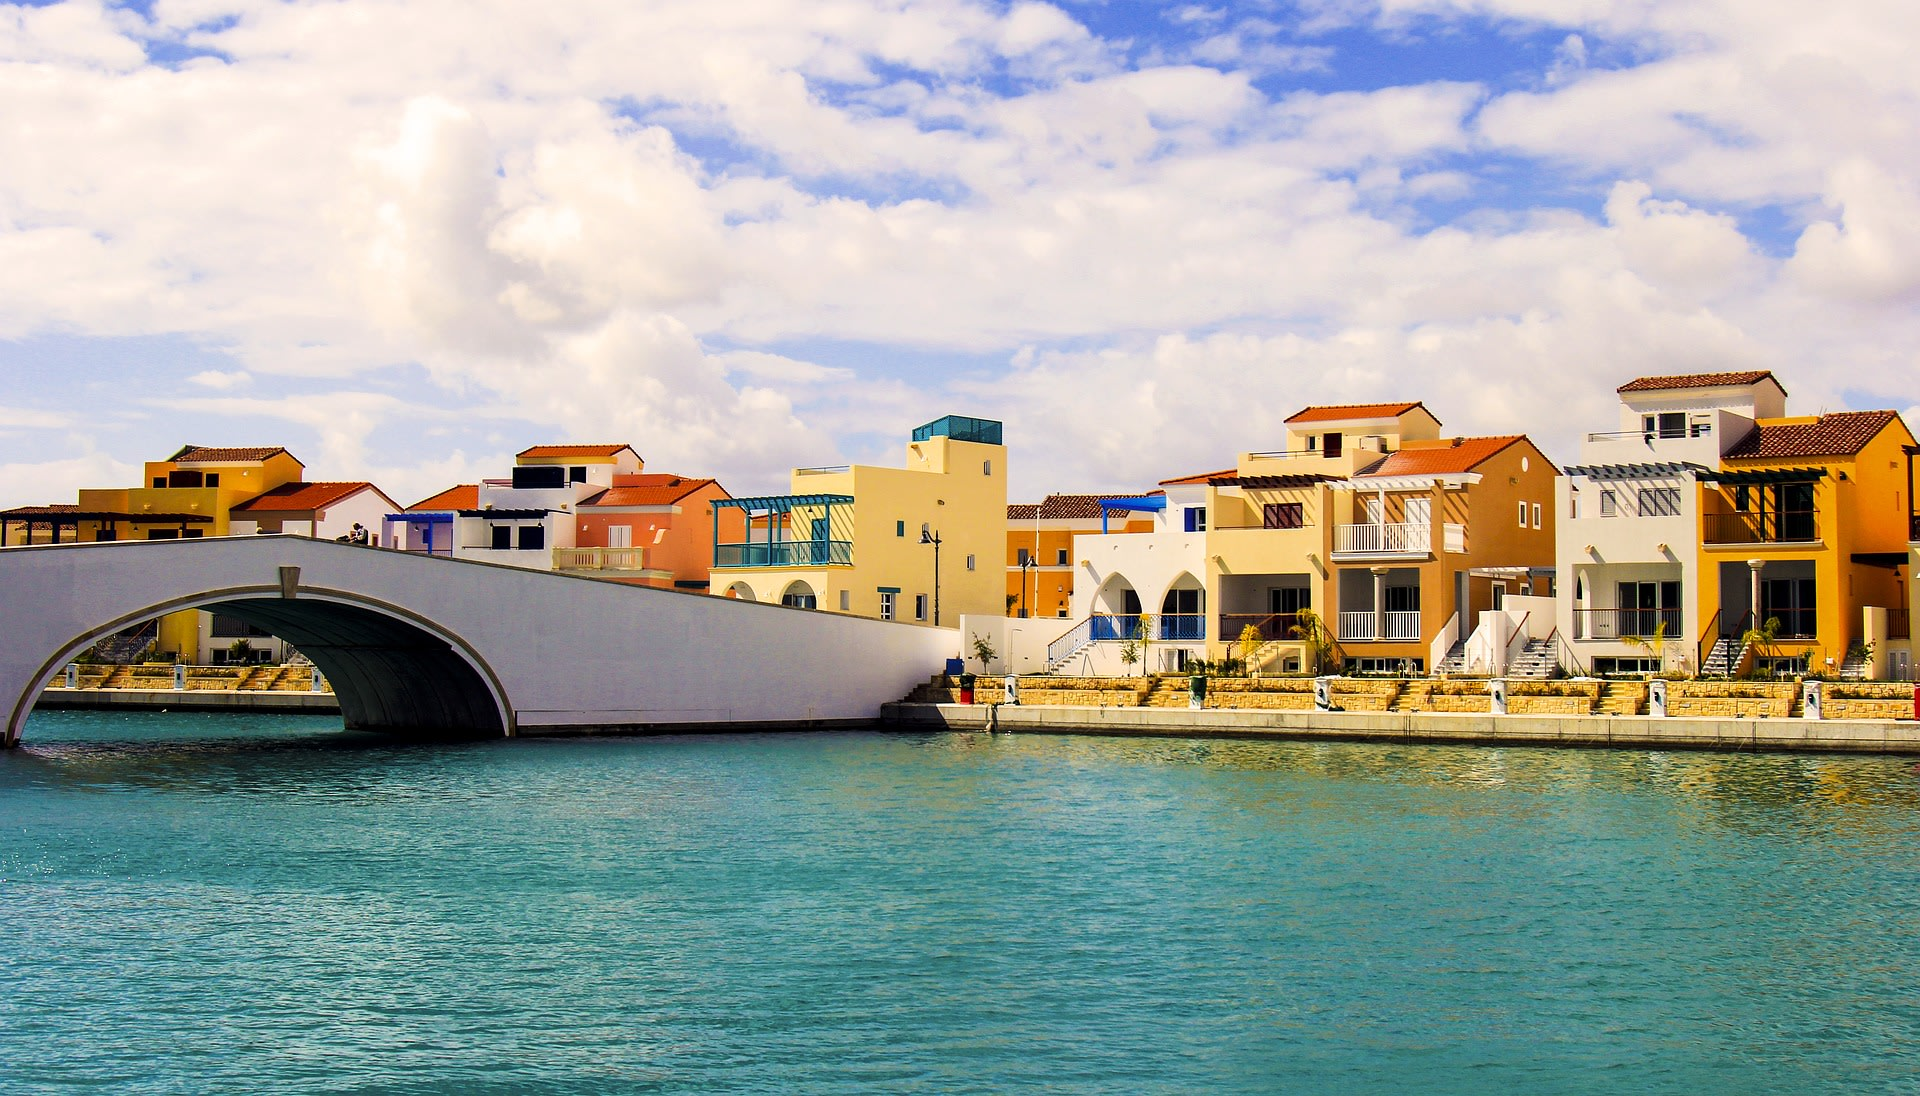 Admire the beauty of Limassol